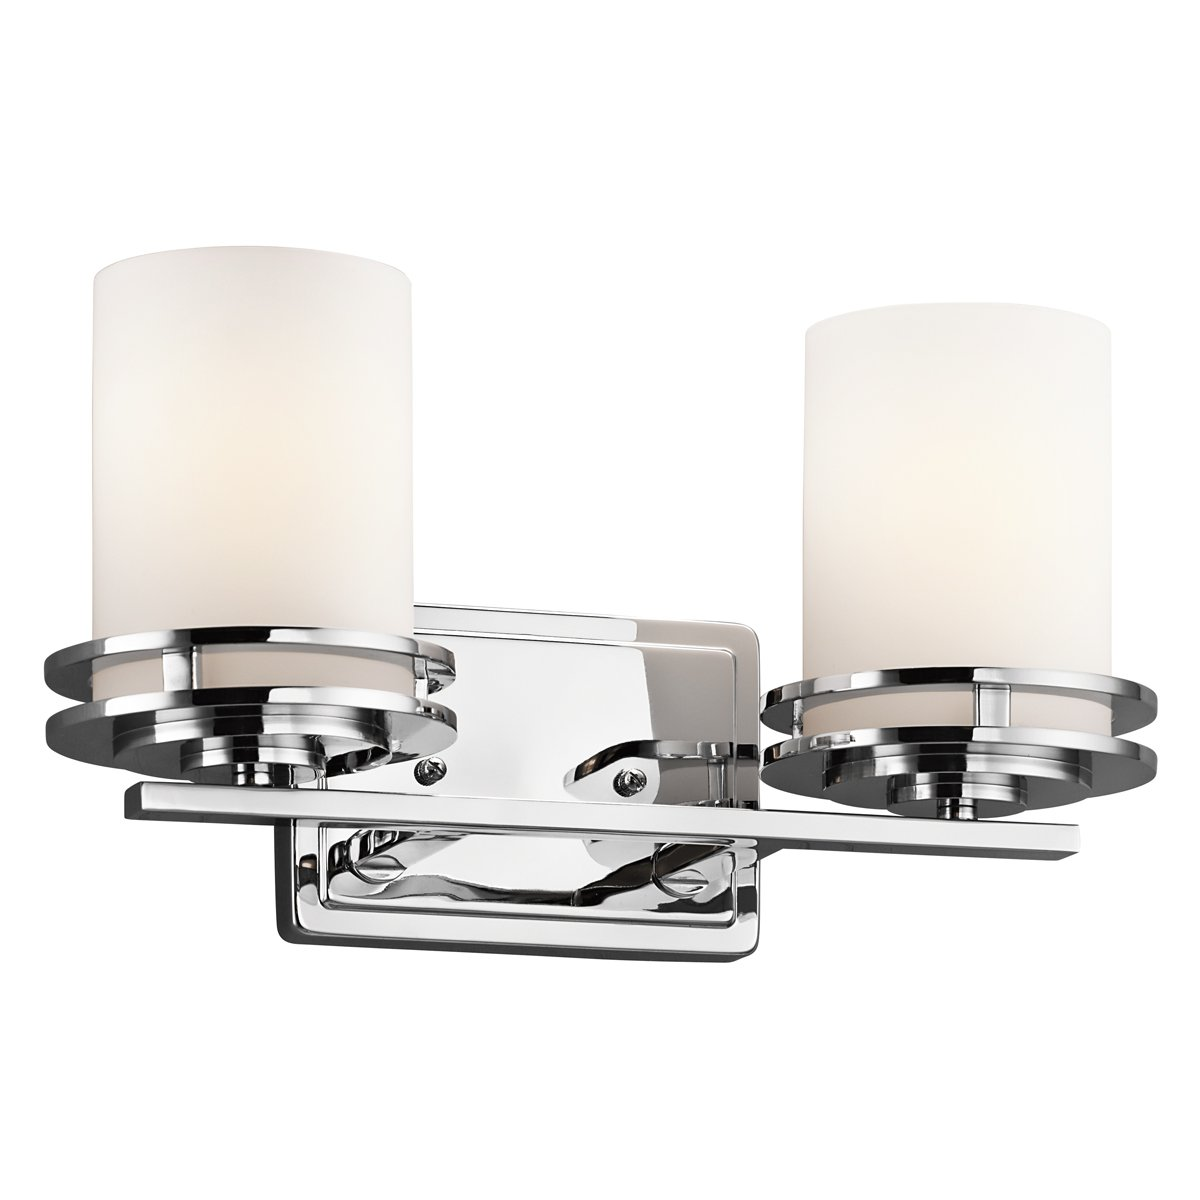 Kichler Lighting 5078ch Hendrik 3light Vanity Fixture, Chrome Finish With  Satin Etched Cased Opal Glass  Chrome Bathroom Light Fixtures  Amazon